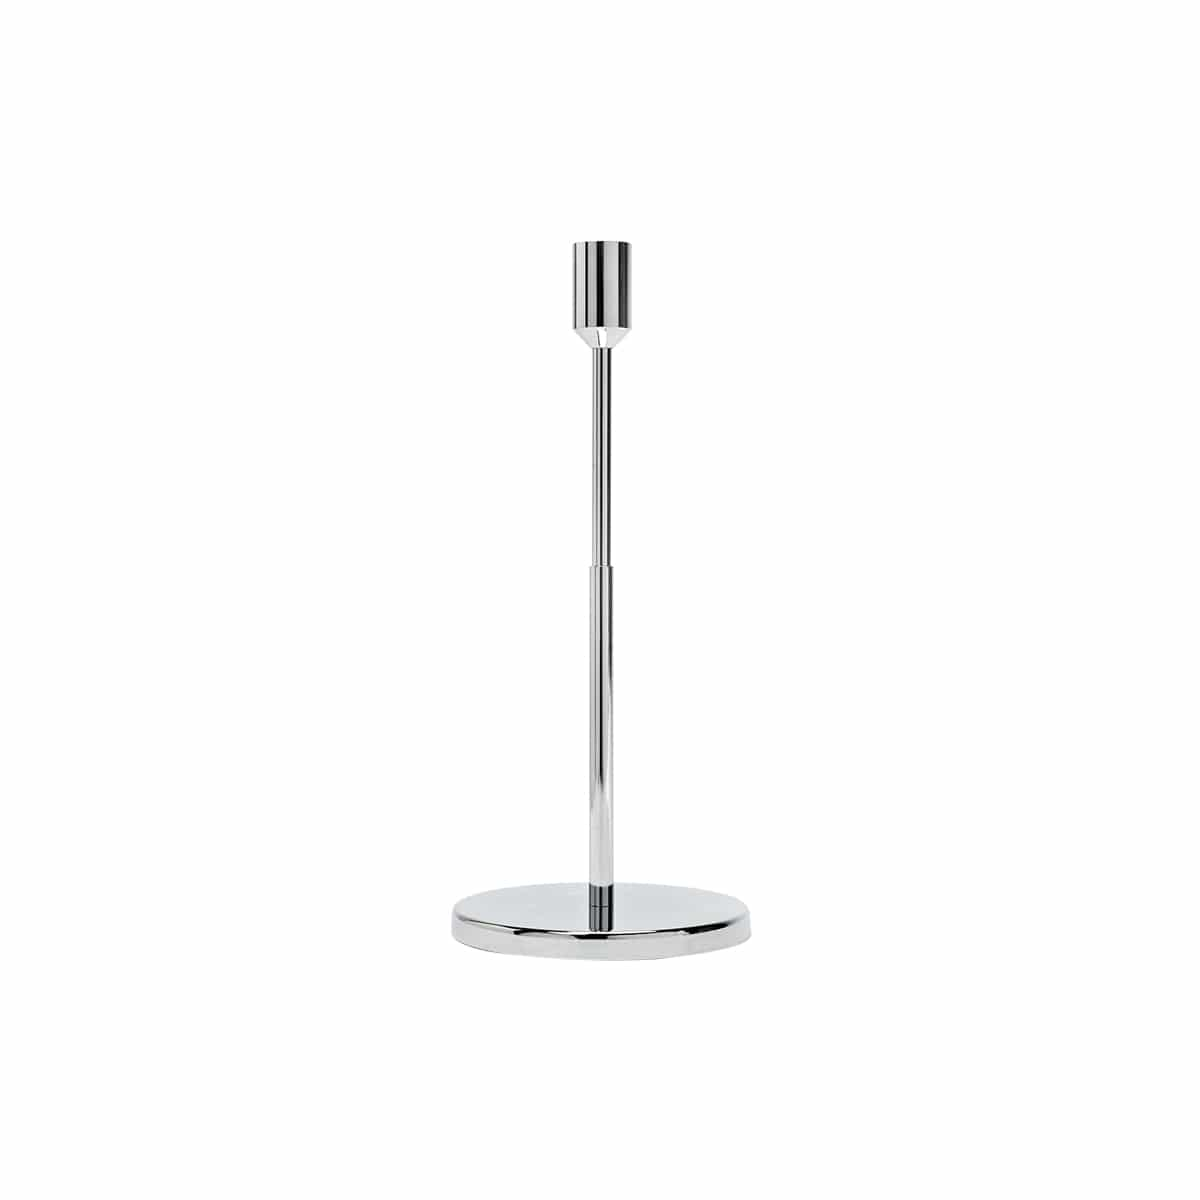 bougeoir candle holder large argent de jansen+co zeeloft